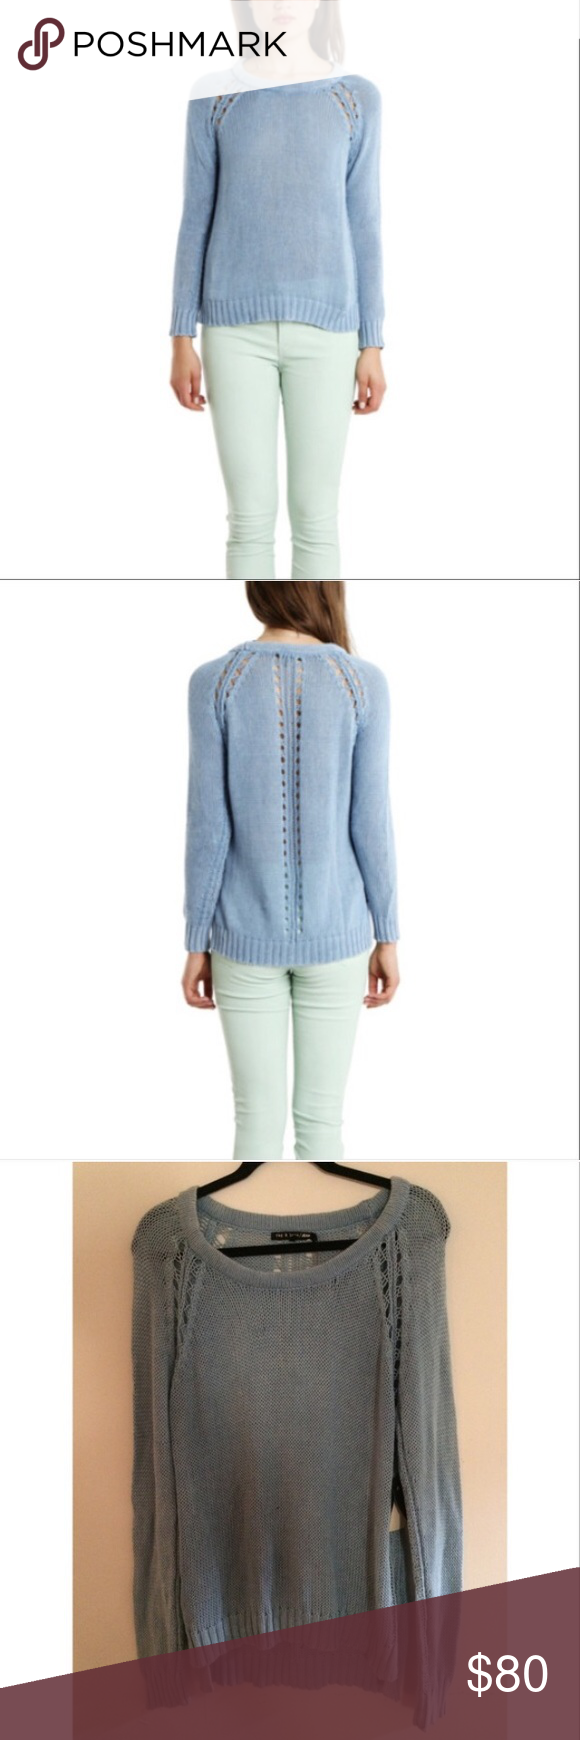 Rag and bone blue bay sweater | Cotton sweater, Scoop neck and ...